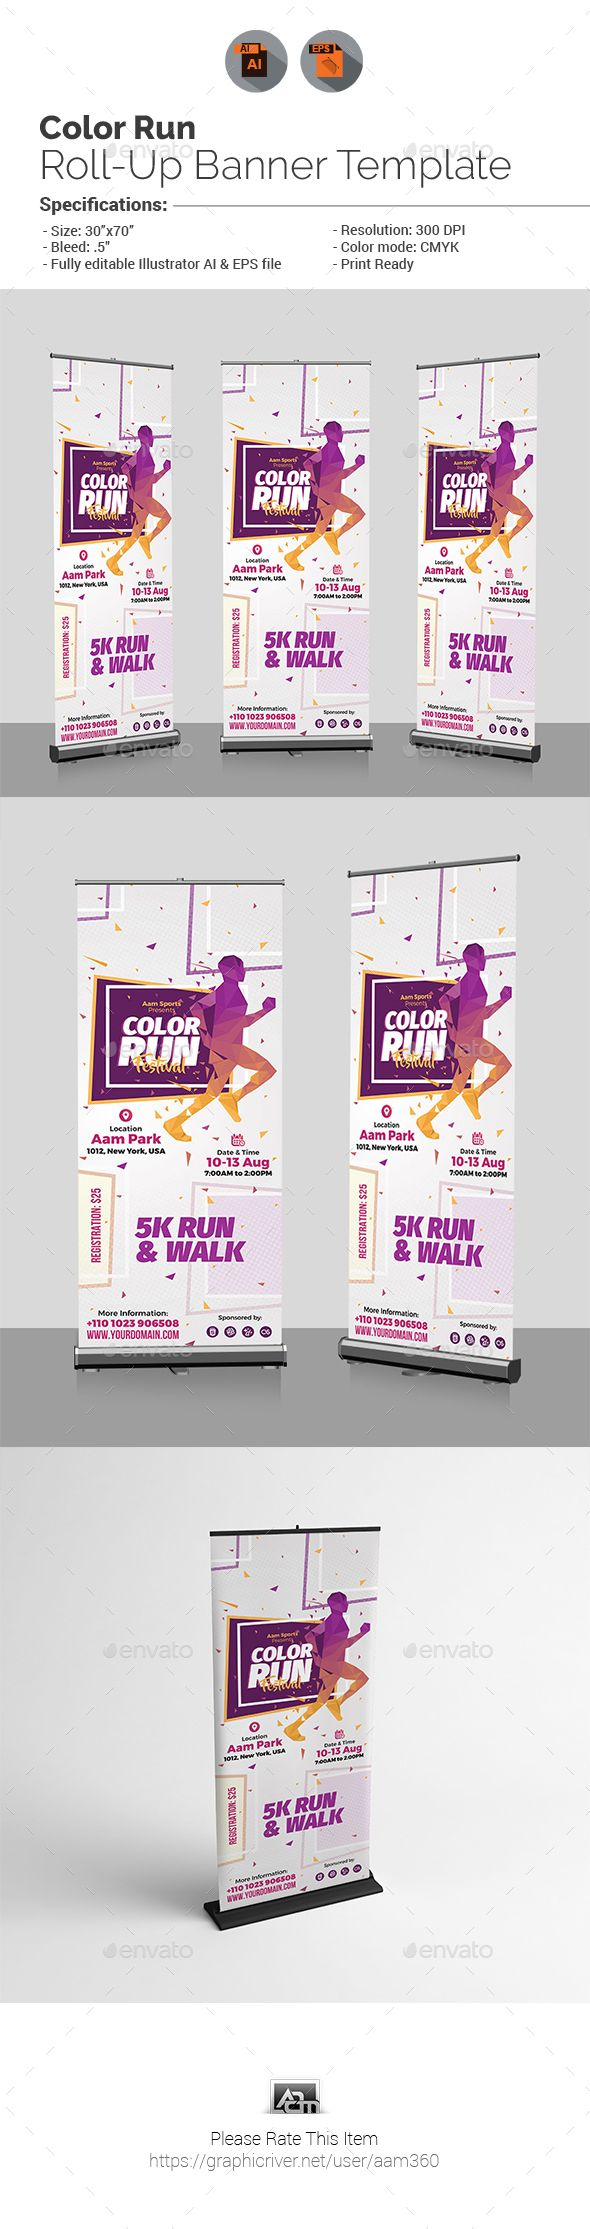 Color Run Roll-Up Banner Template by aam360 Similar Templates:INFORMATIONS FOR T...